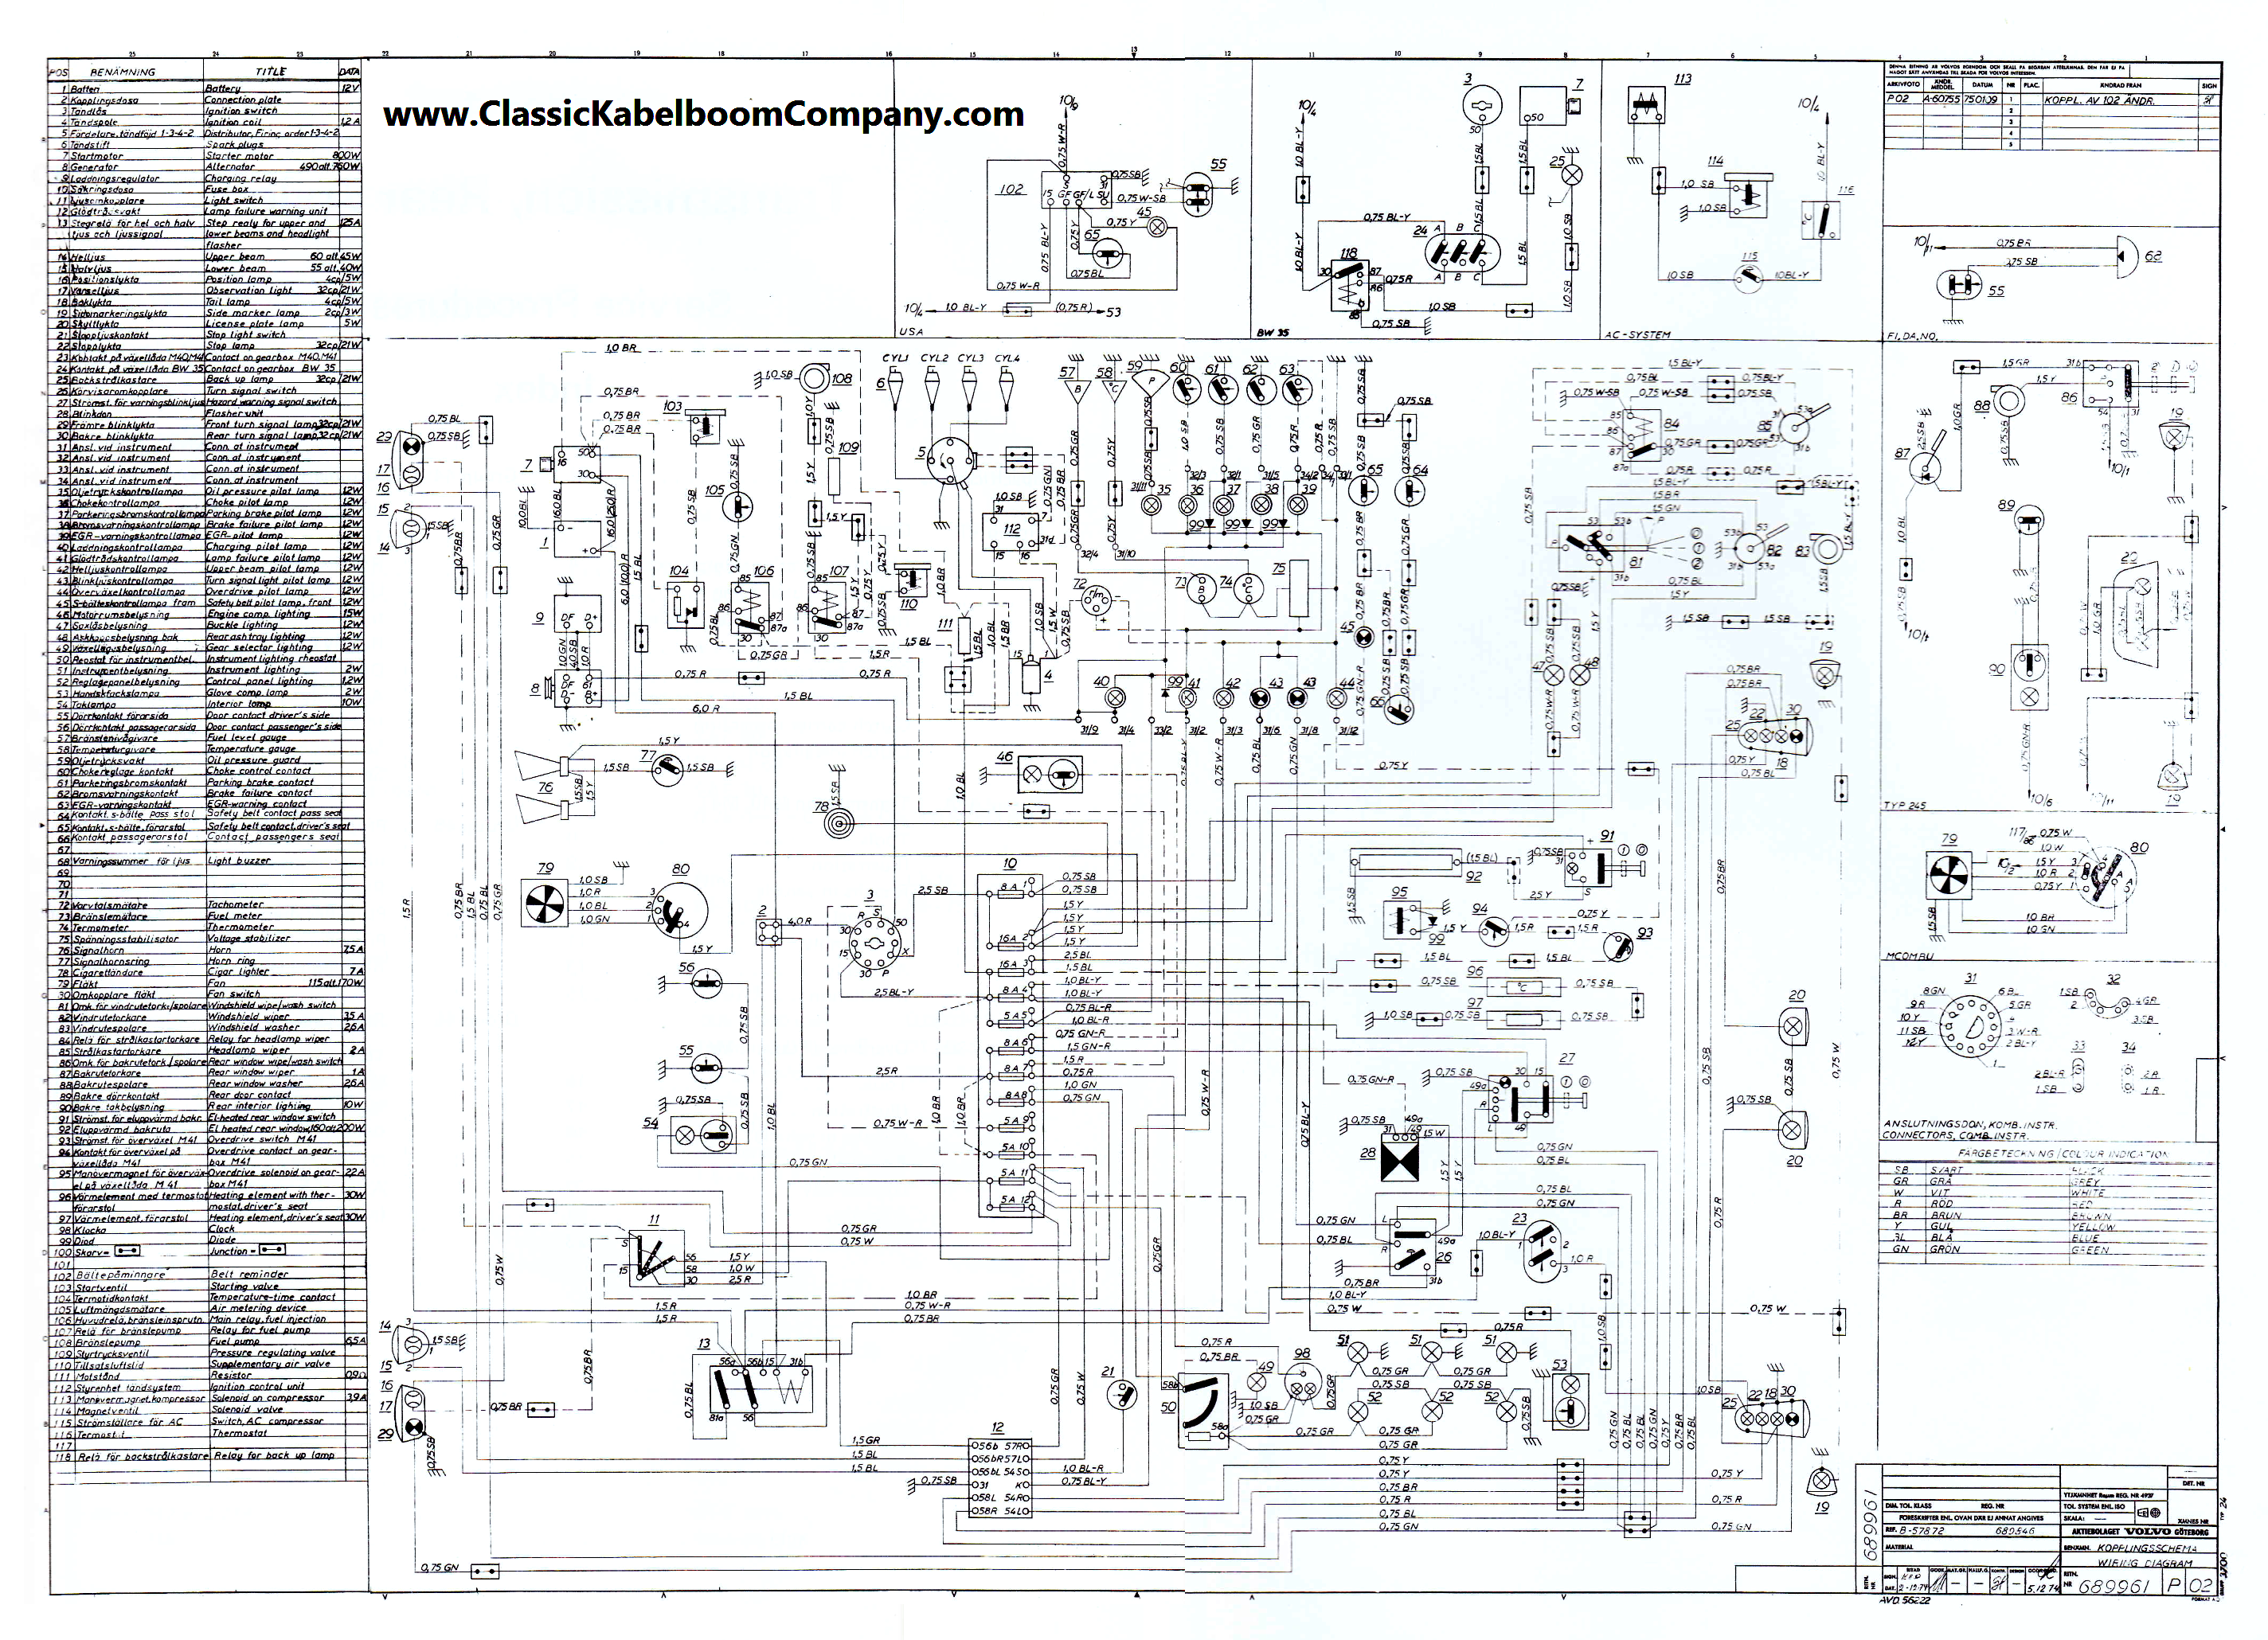 vol40?cdp=a classic kabelboom company elektrisch bedrading schema volvo volvo amazon wiring diagram at fashall.co